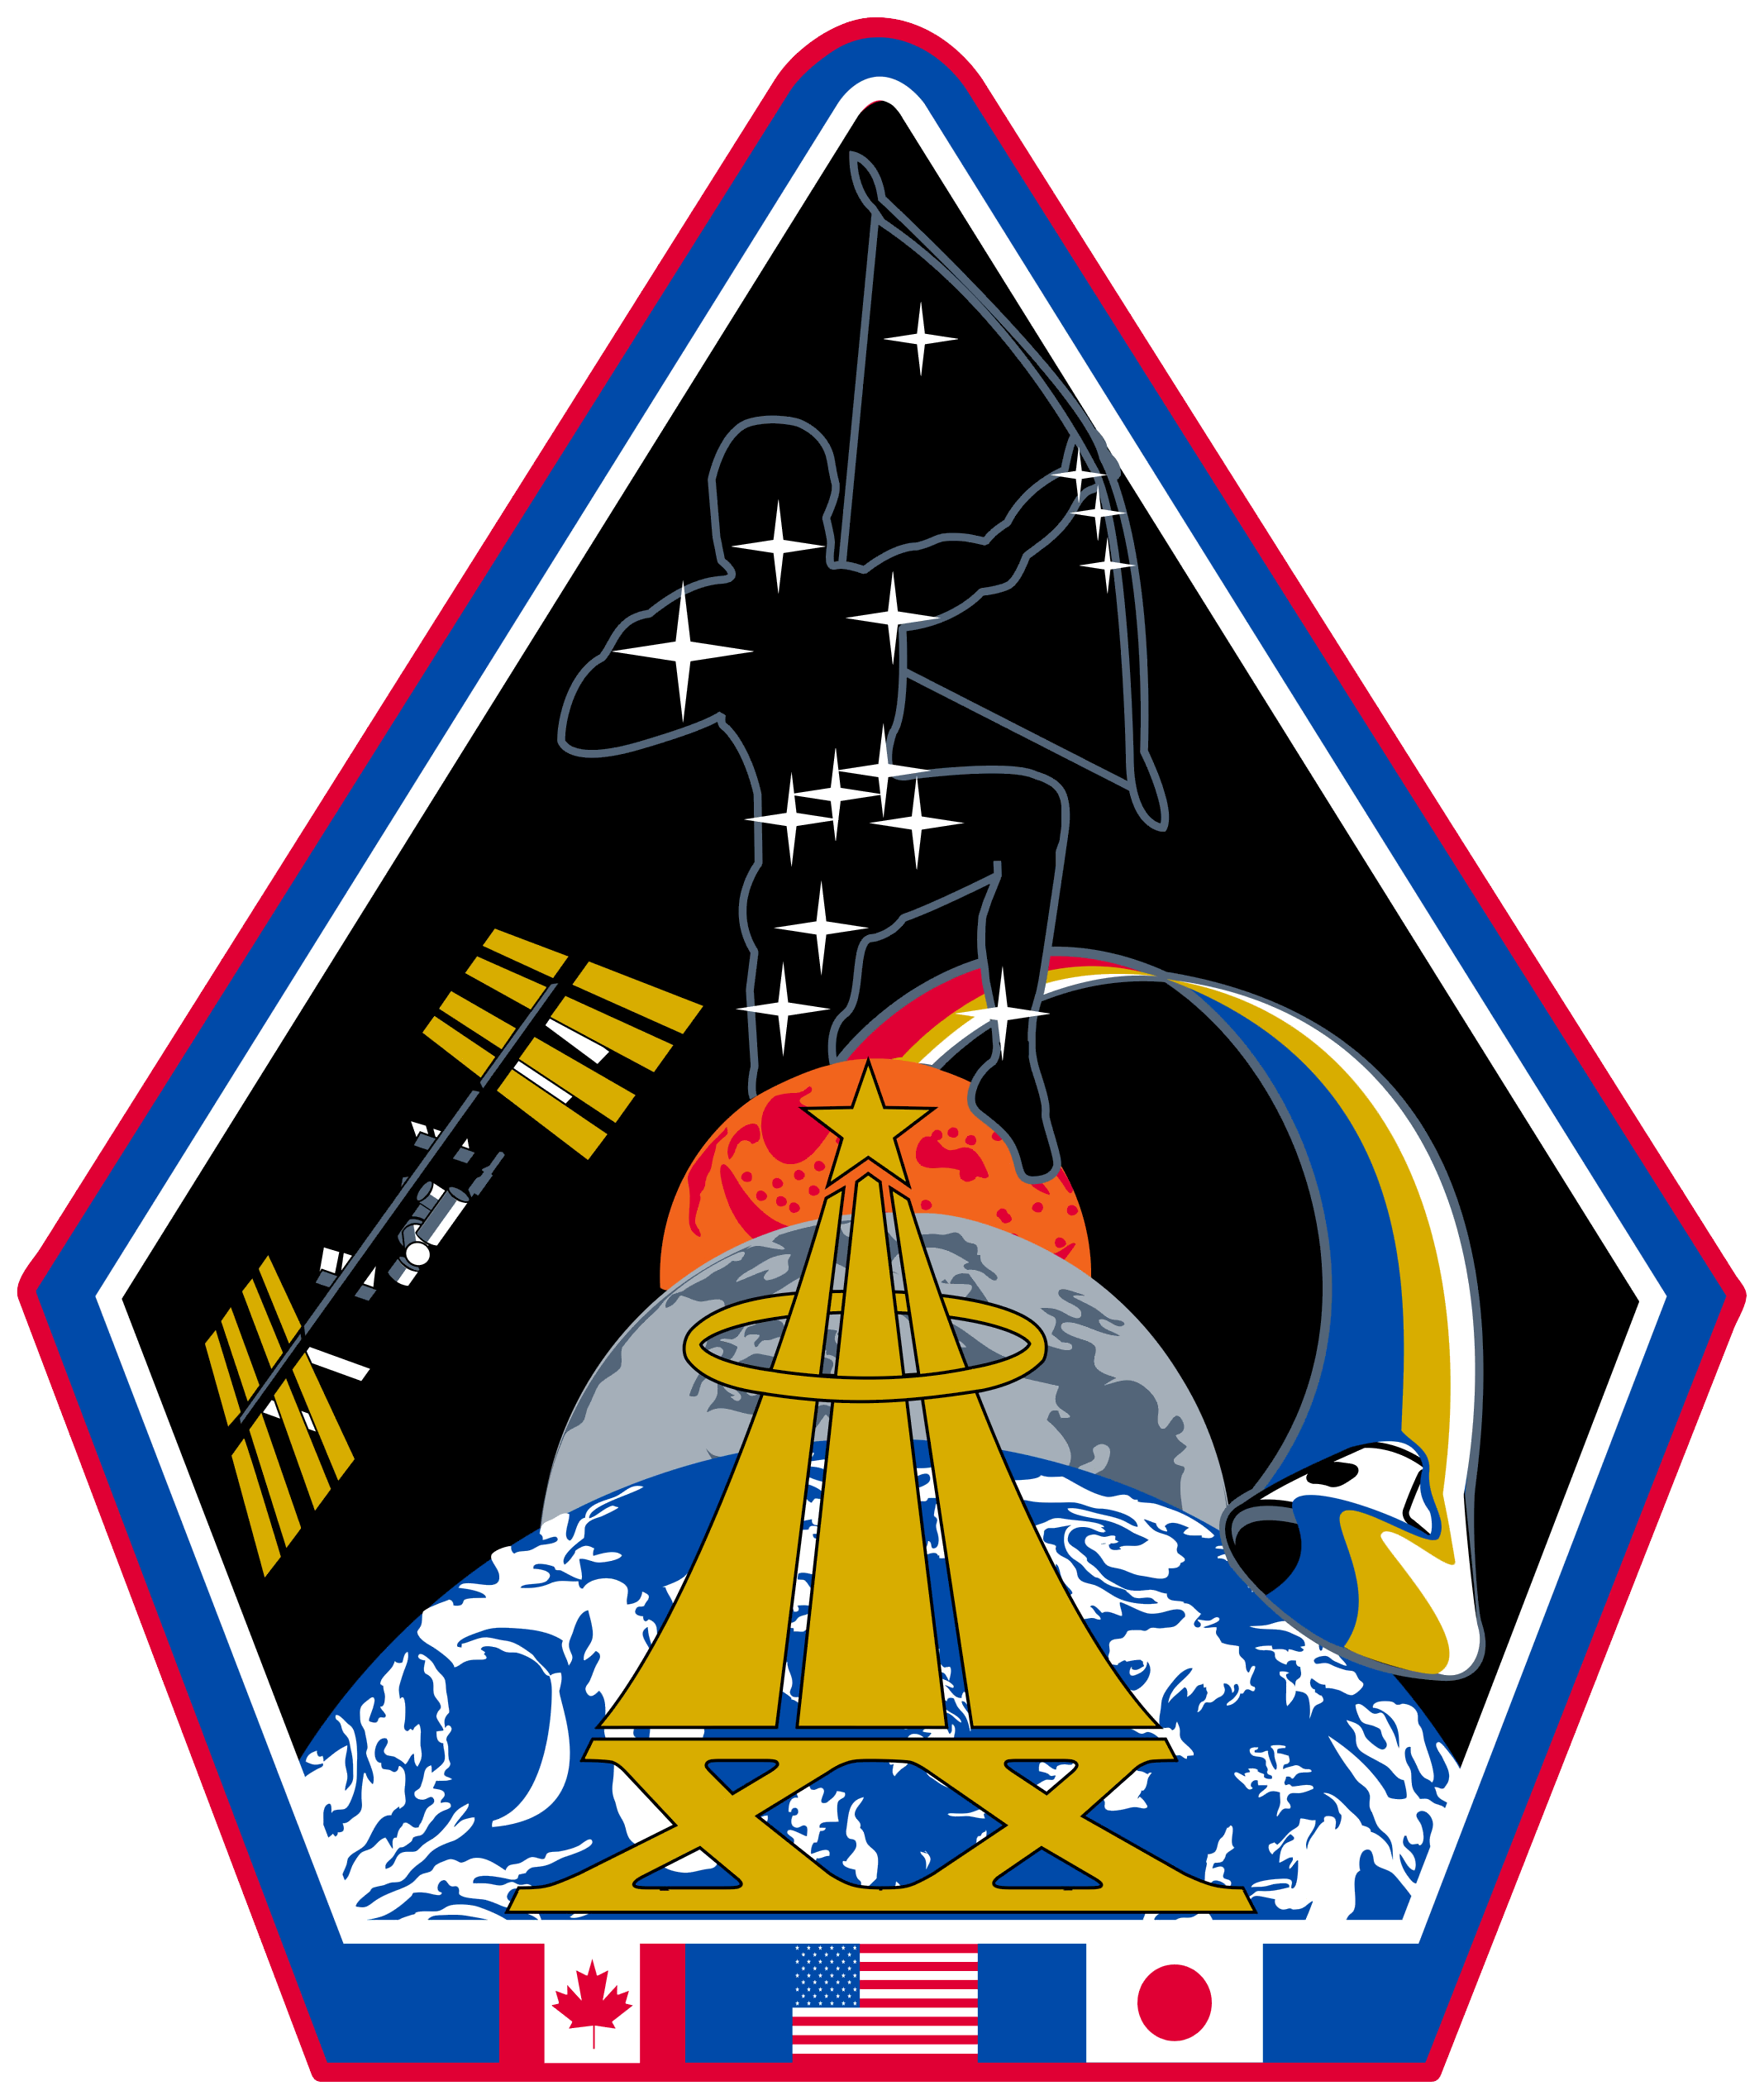 File:Astronaut class group 20 patch.png.